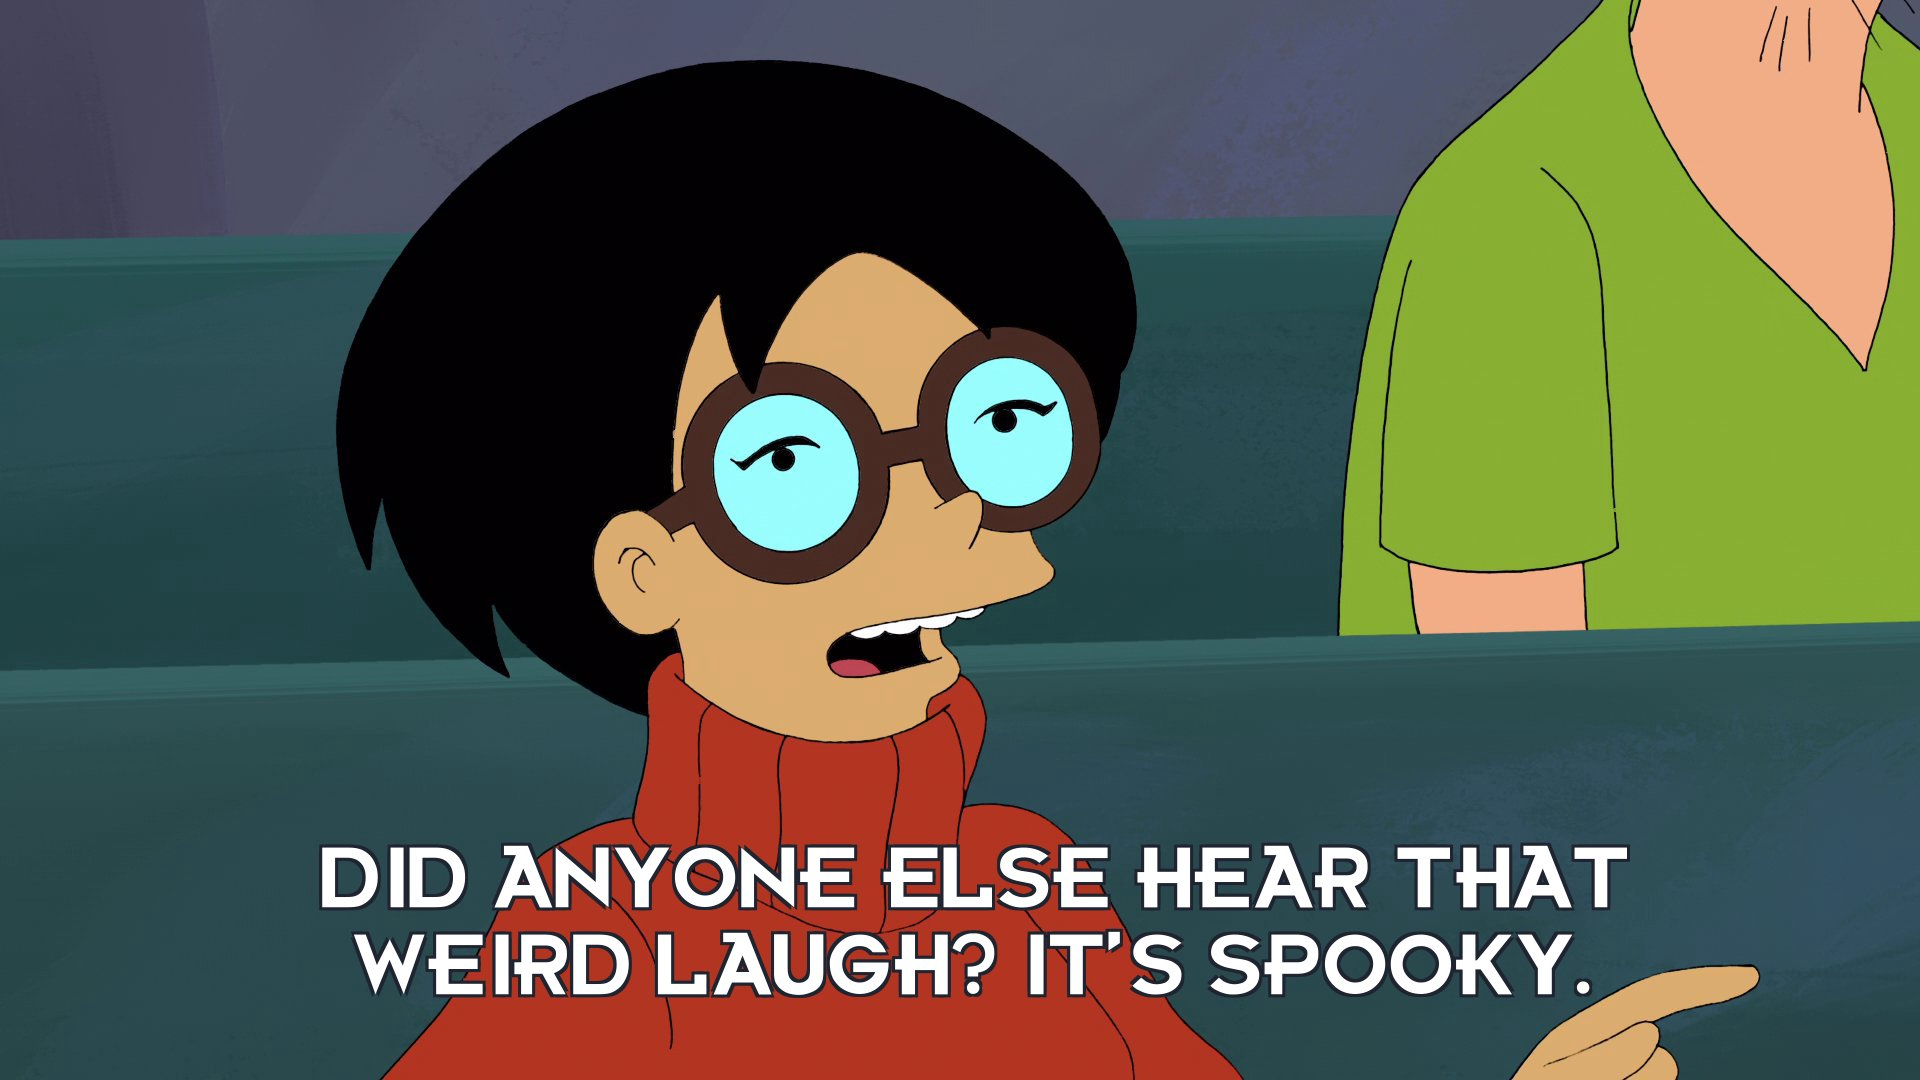 Velma Wong: Did anyone else hear that weird laugh? It's spooky.